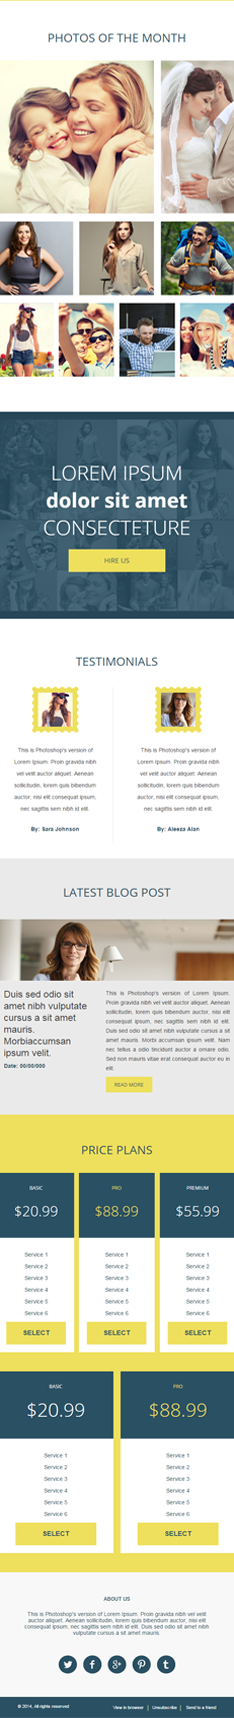 photobest second half email template with clean and professional design